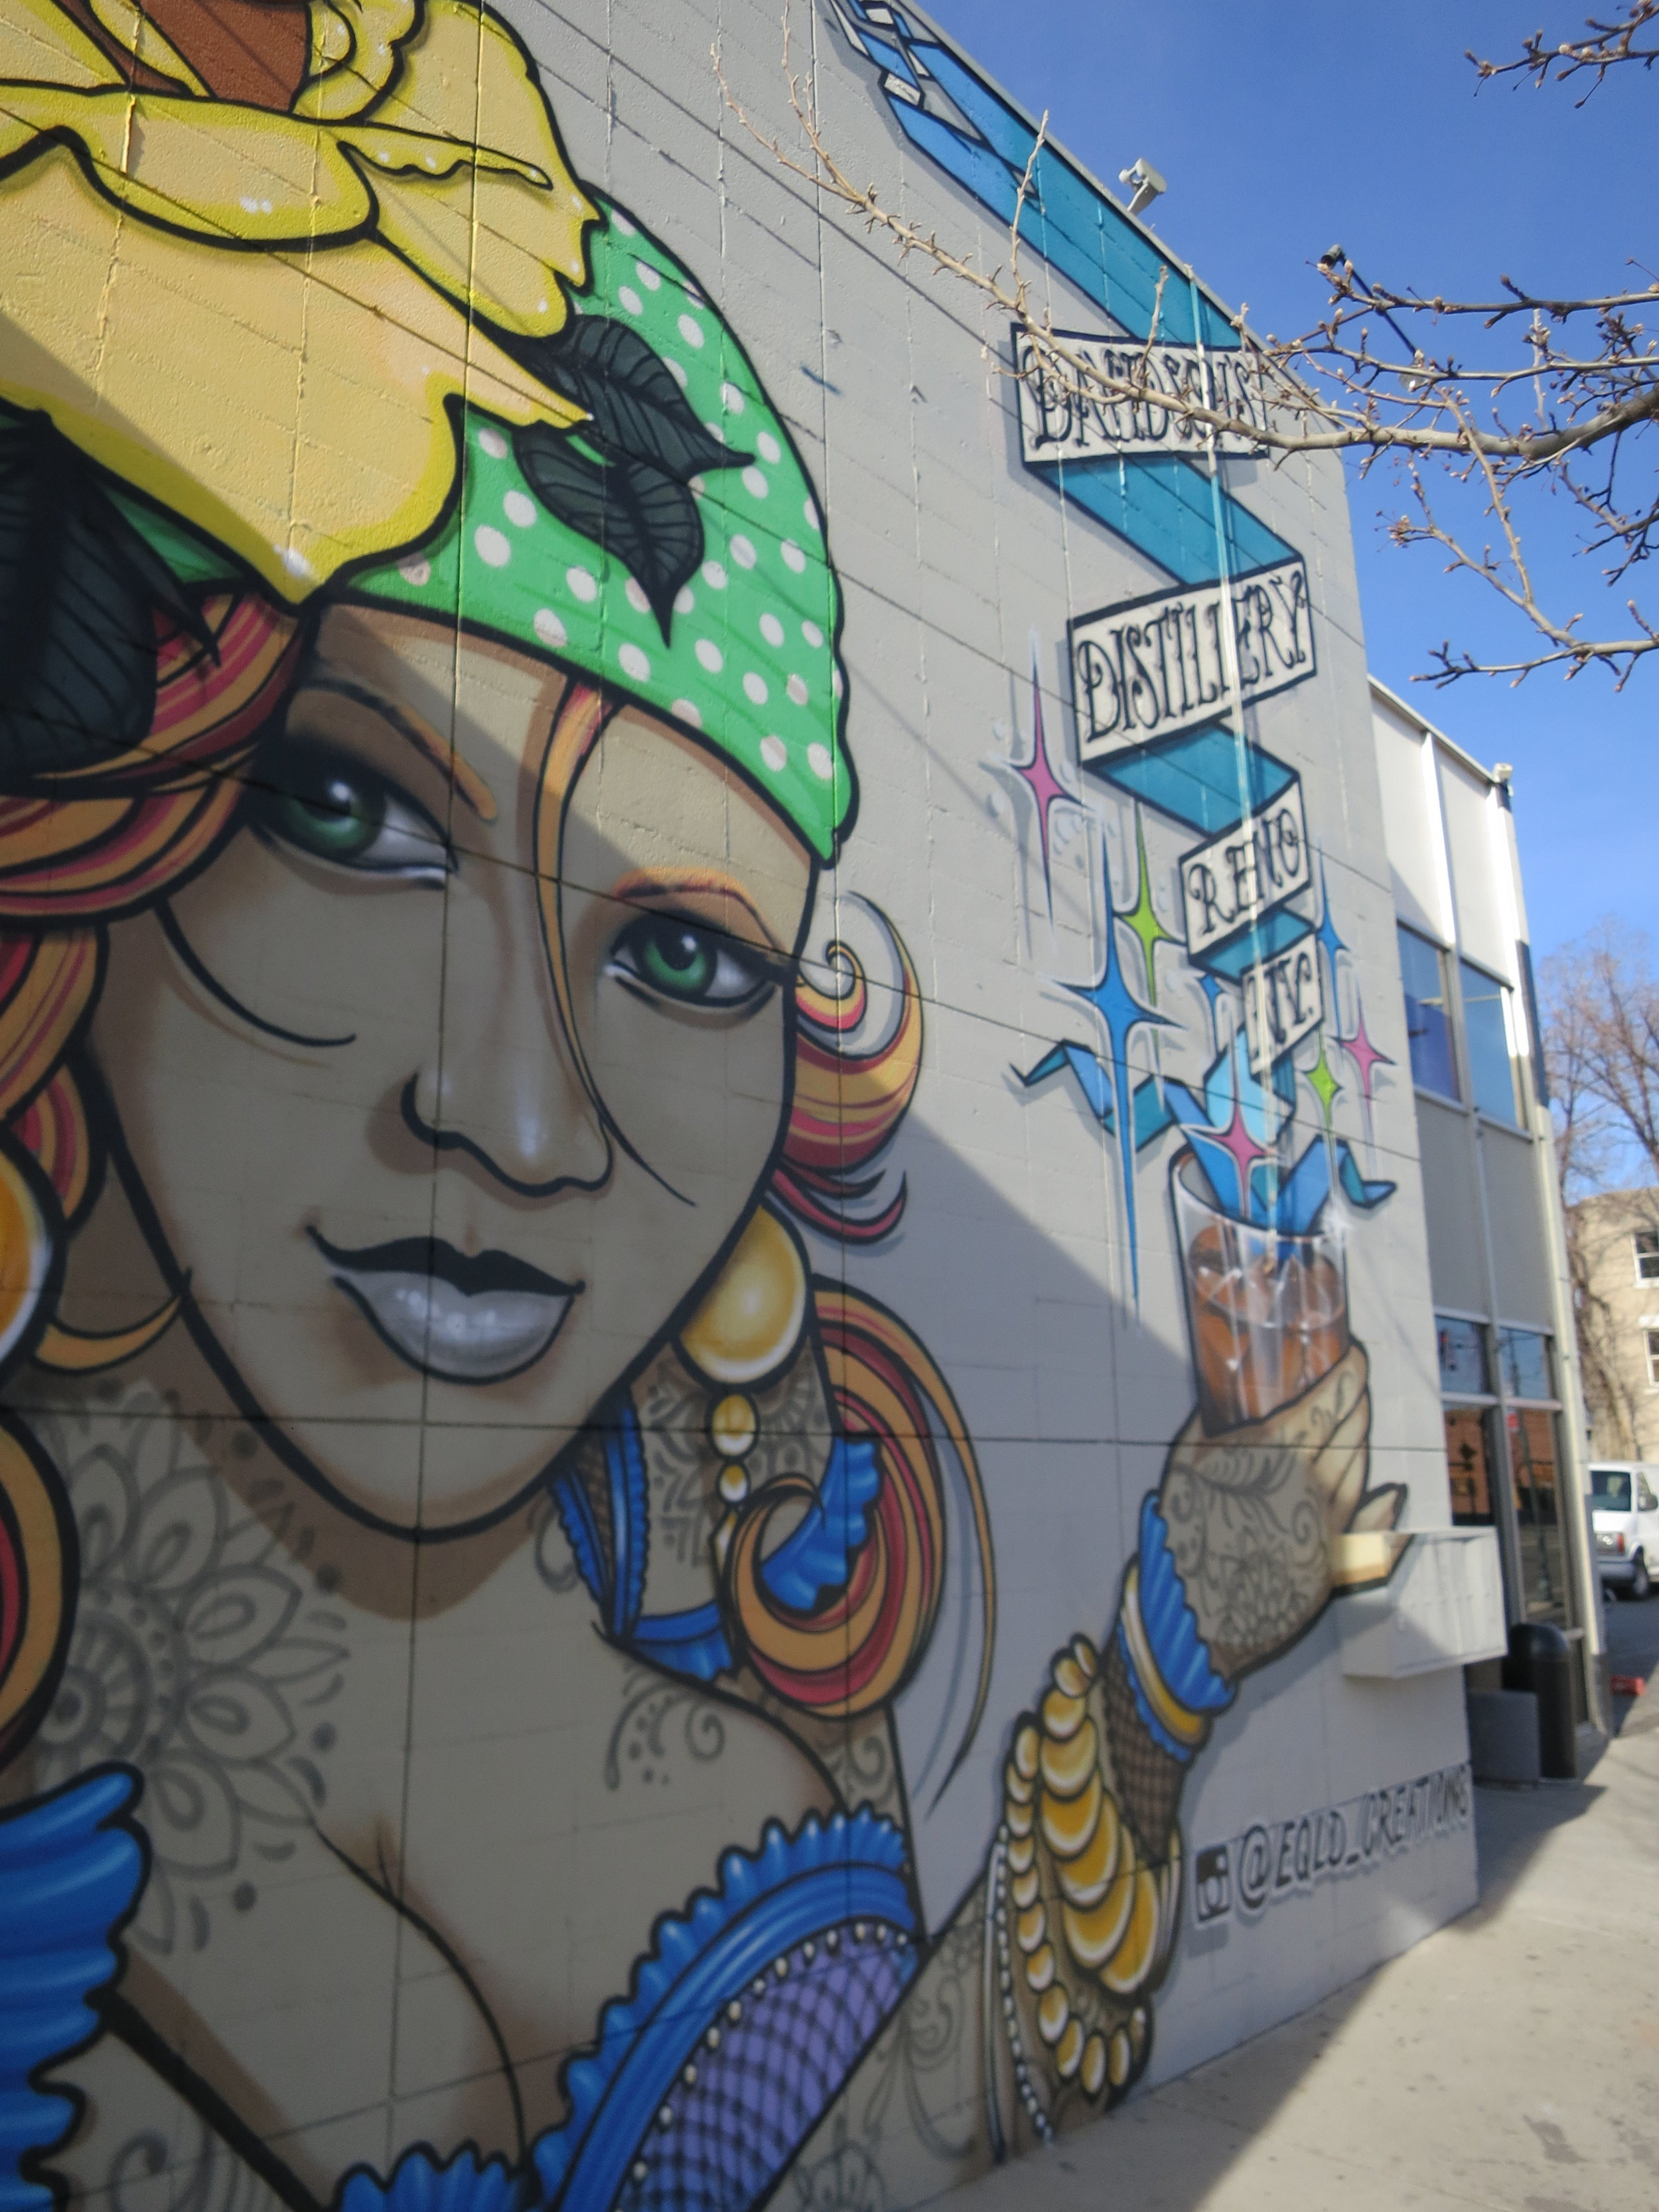 Businesses also pay for muralists to decorate their walls in the downtown corridor.